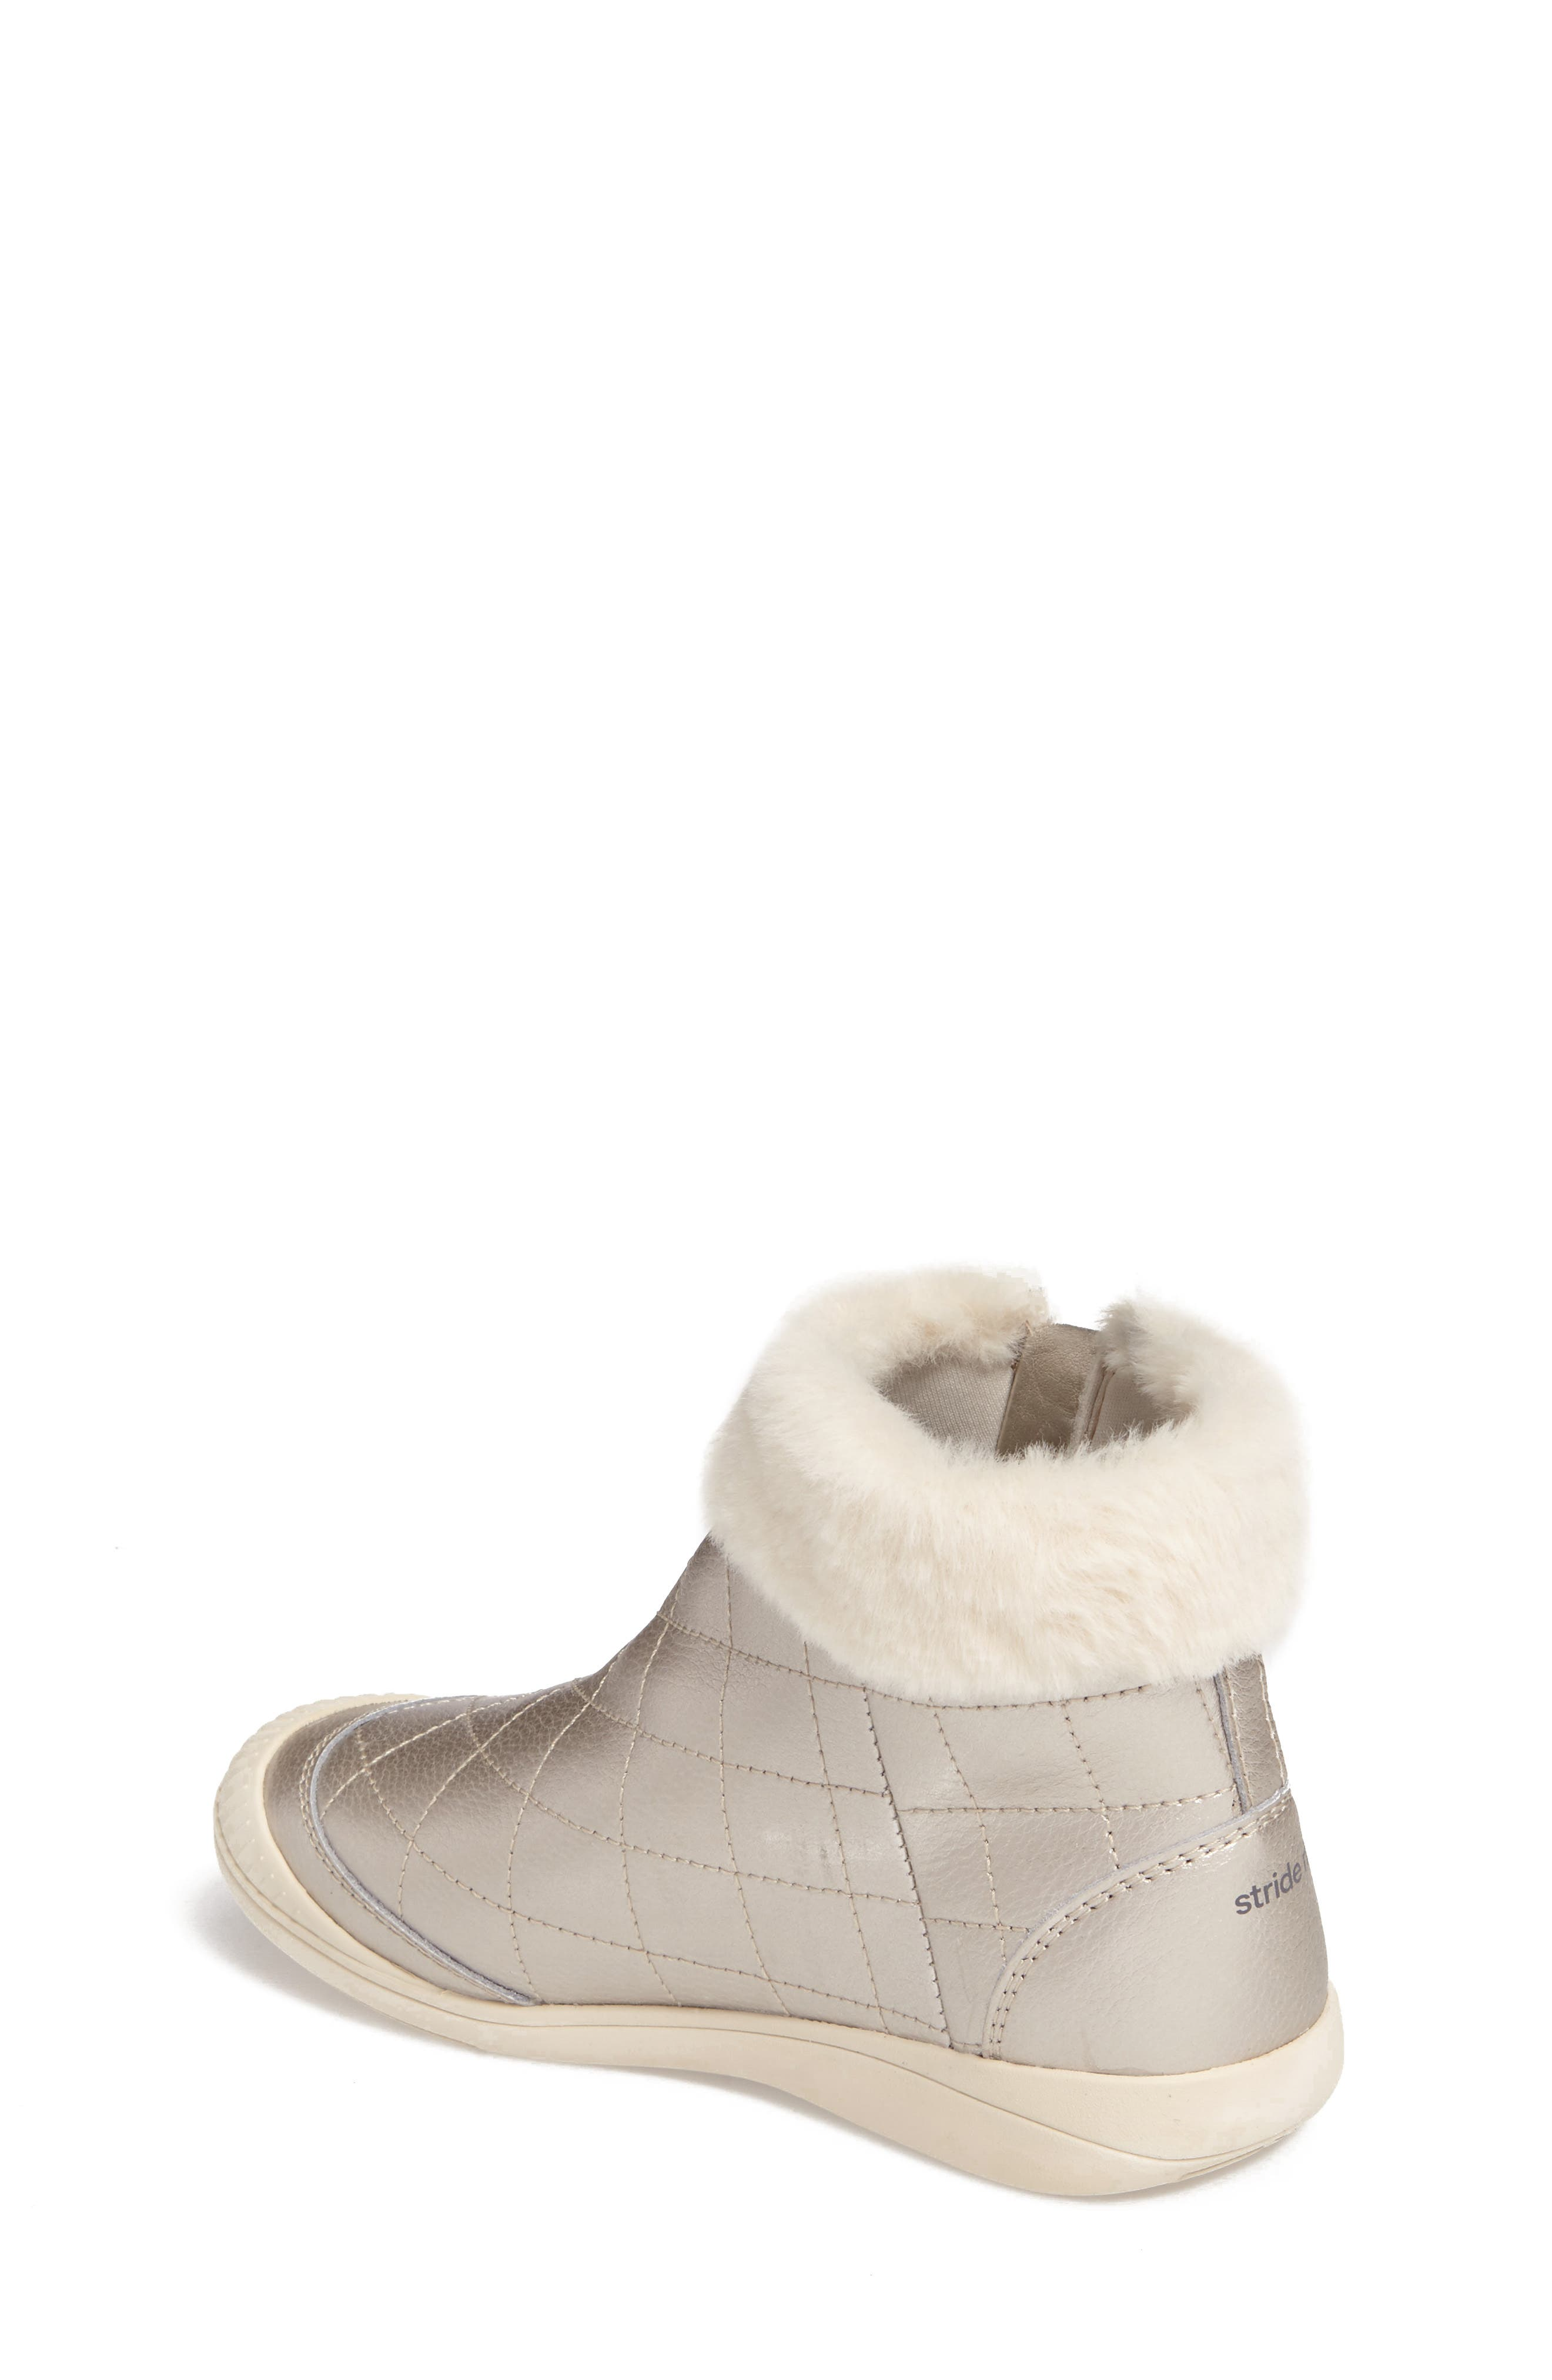 Alternate Image 2  - Stride Rite Chloe Faux Fur Quilted Bootie (Walker, Toddler & Little Kid)